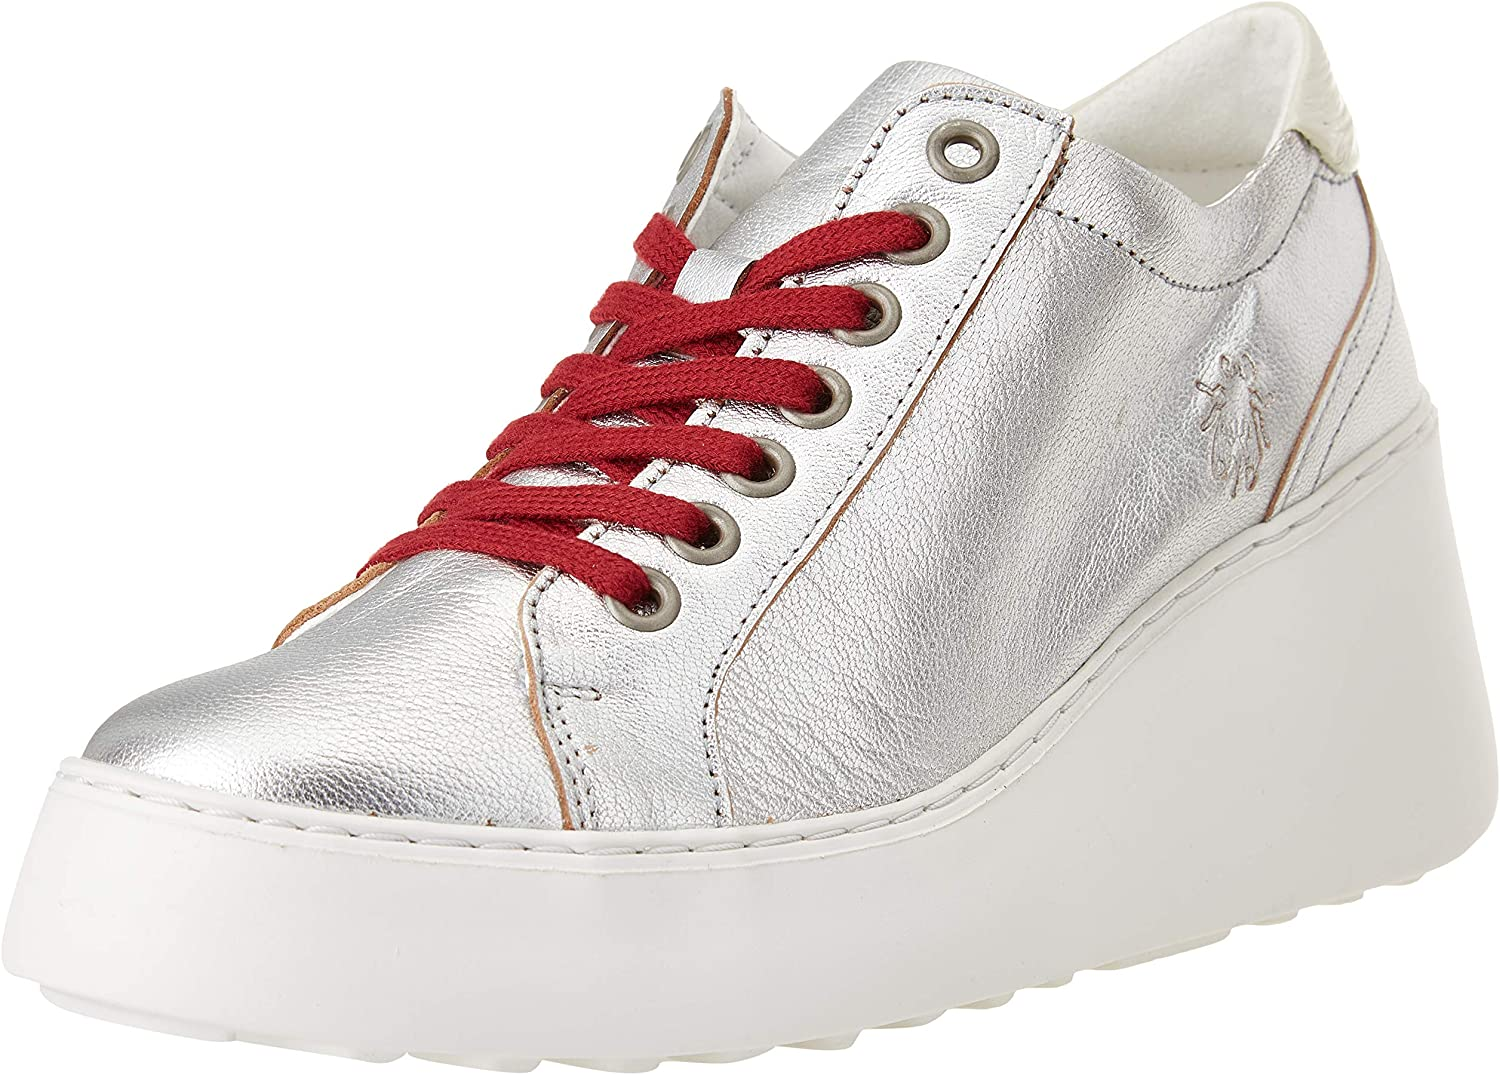 Fly London Dile450fly, Zapatillas Mujer